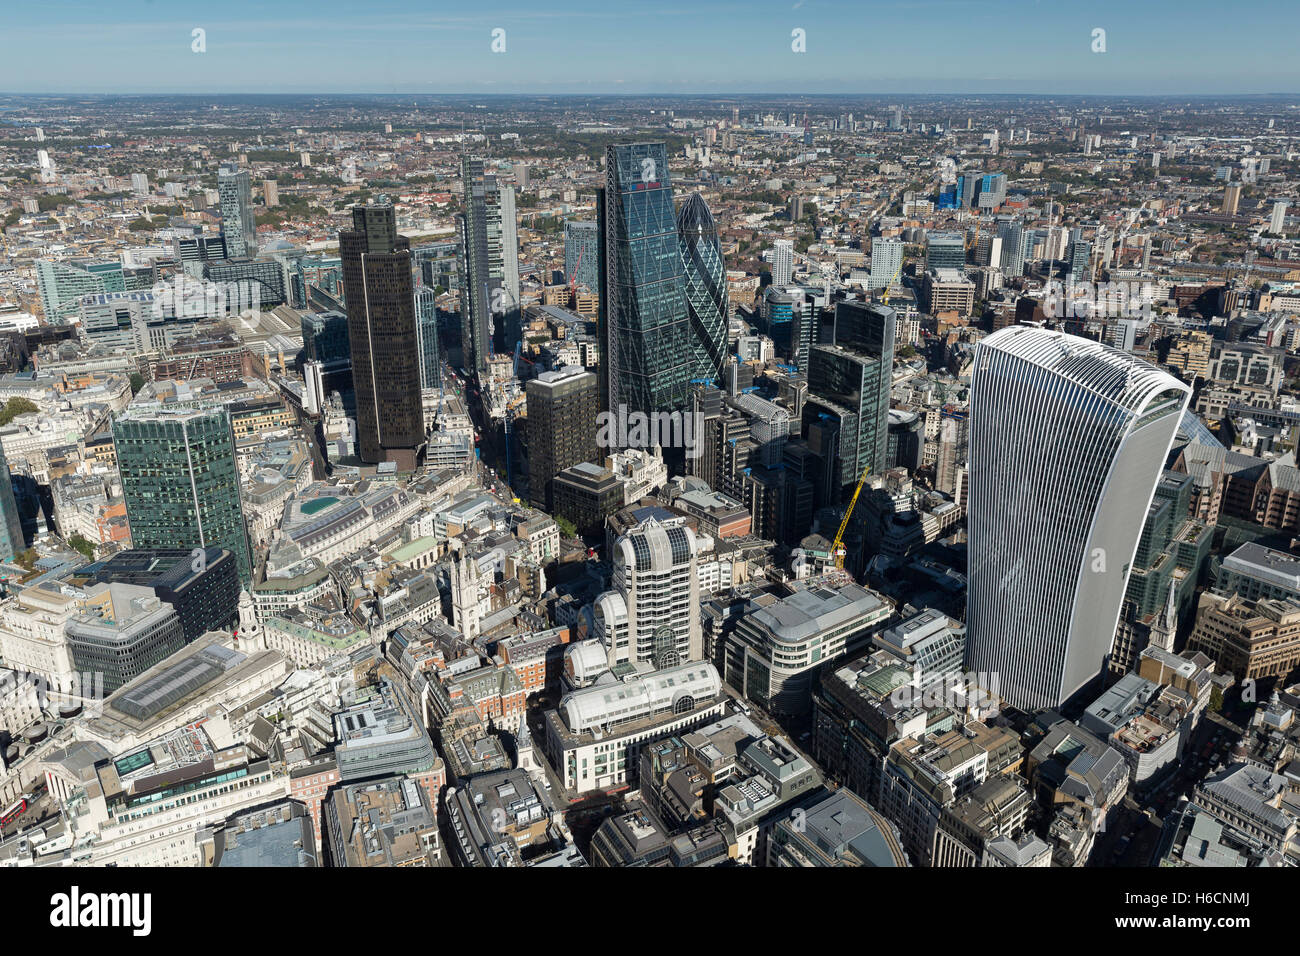 The tall buildings in The City of London, Moorgate. - Stock Image